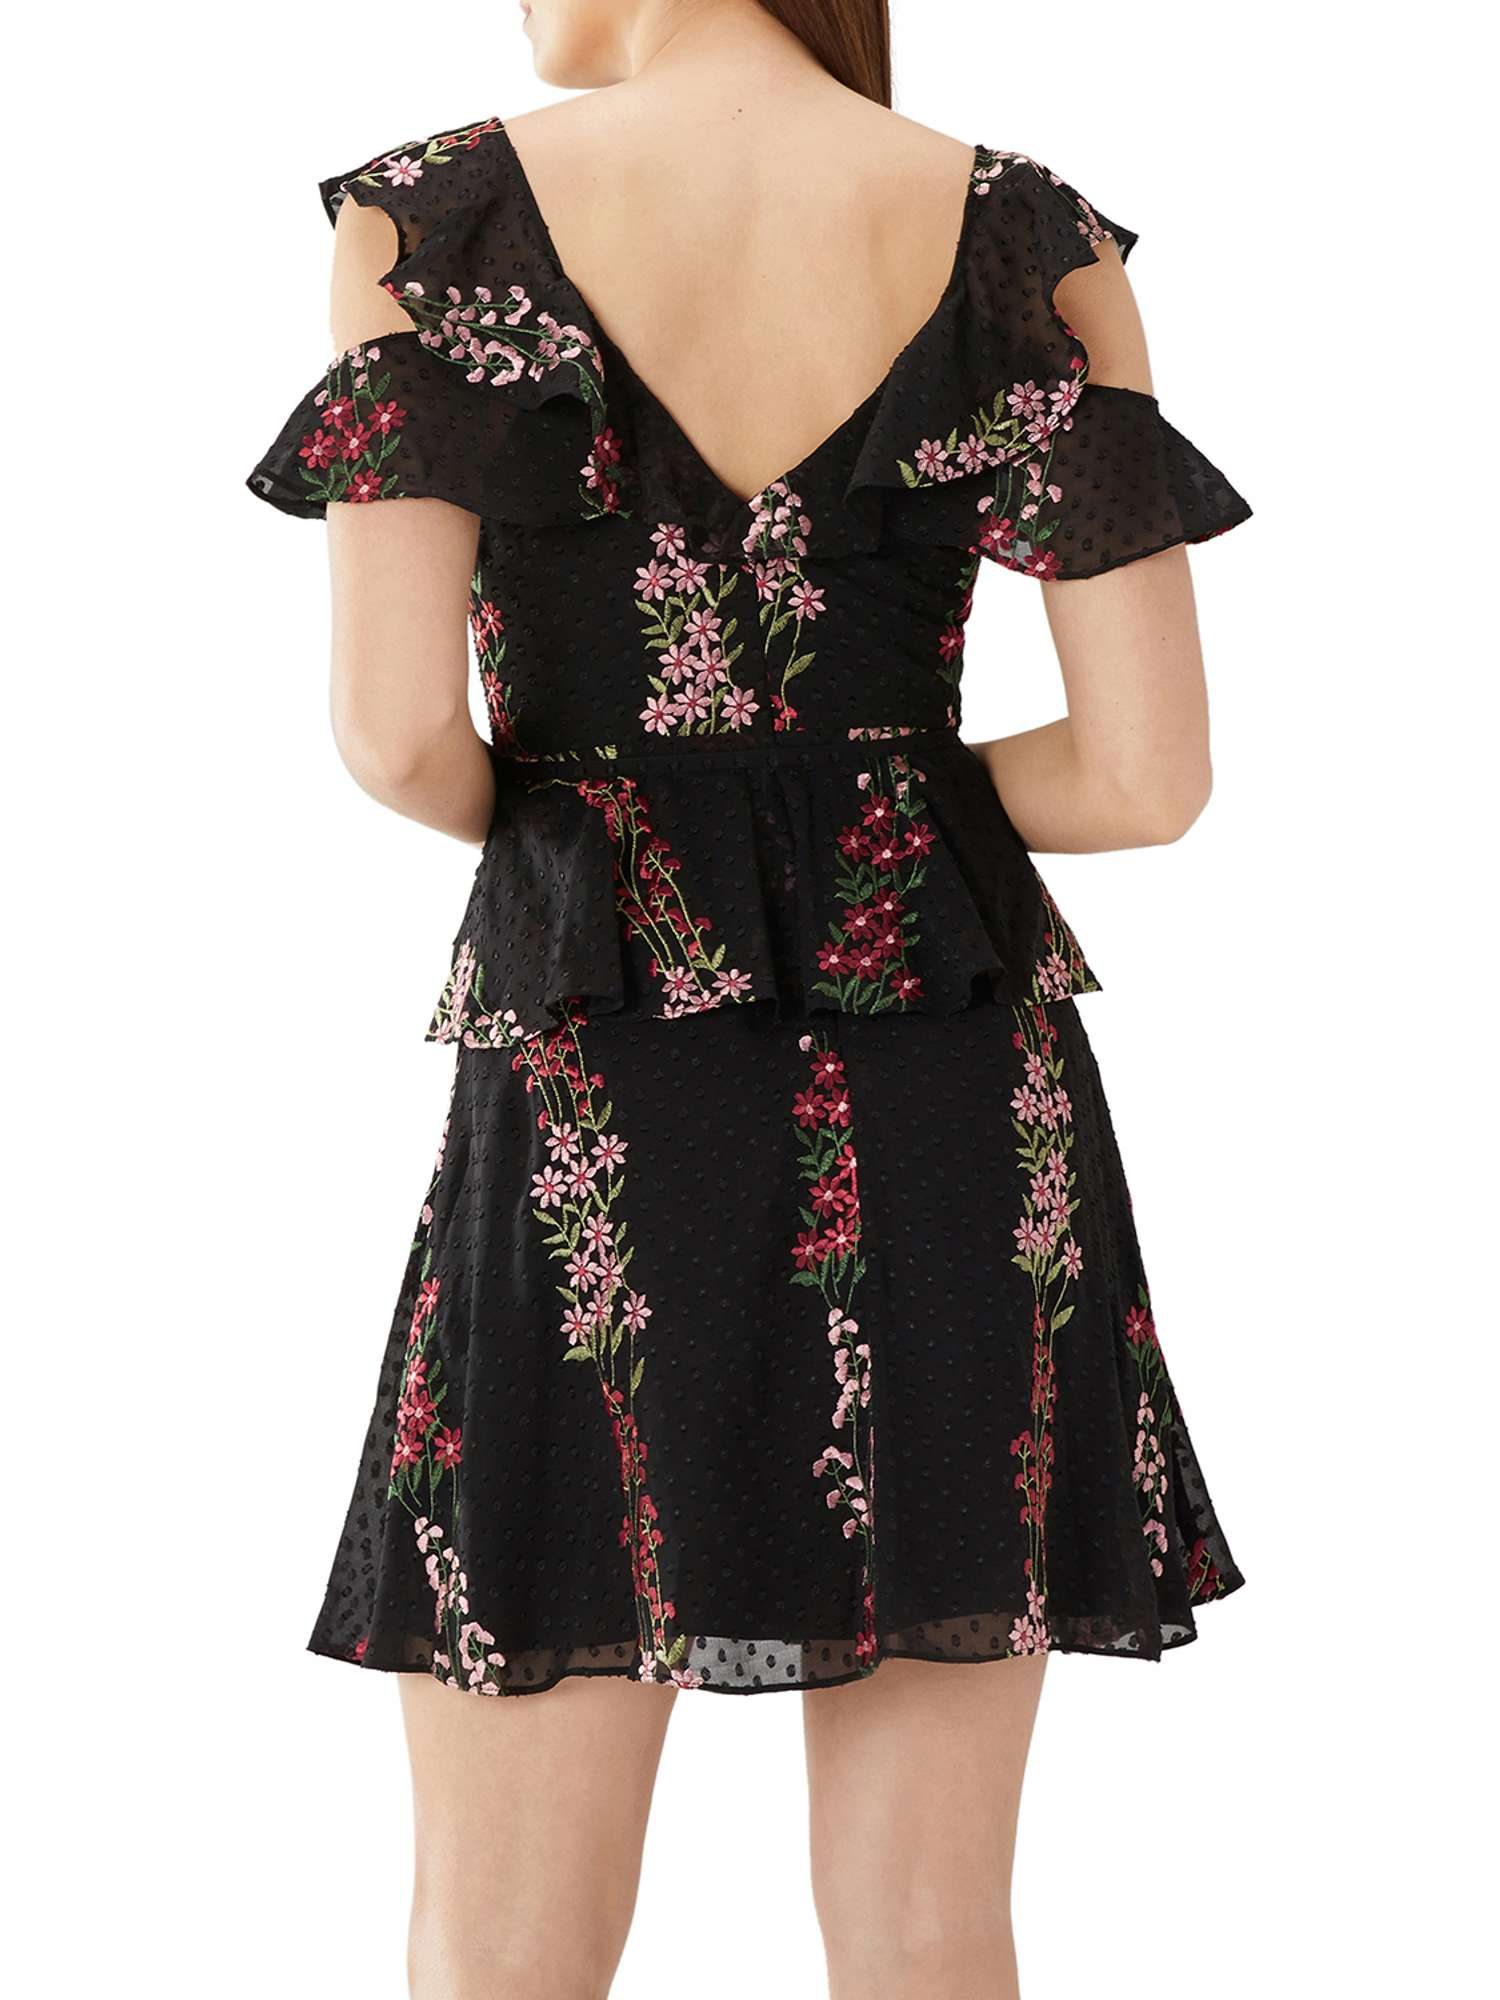 Embroidered Coast Coast Embroidered Delilah Coast Embroidered Coast Dress Dress Delilah Delilah Delilah Dress dqnzxdw4